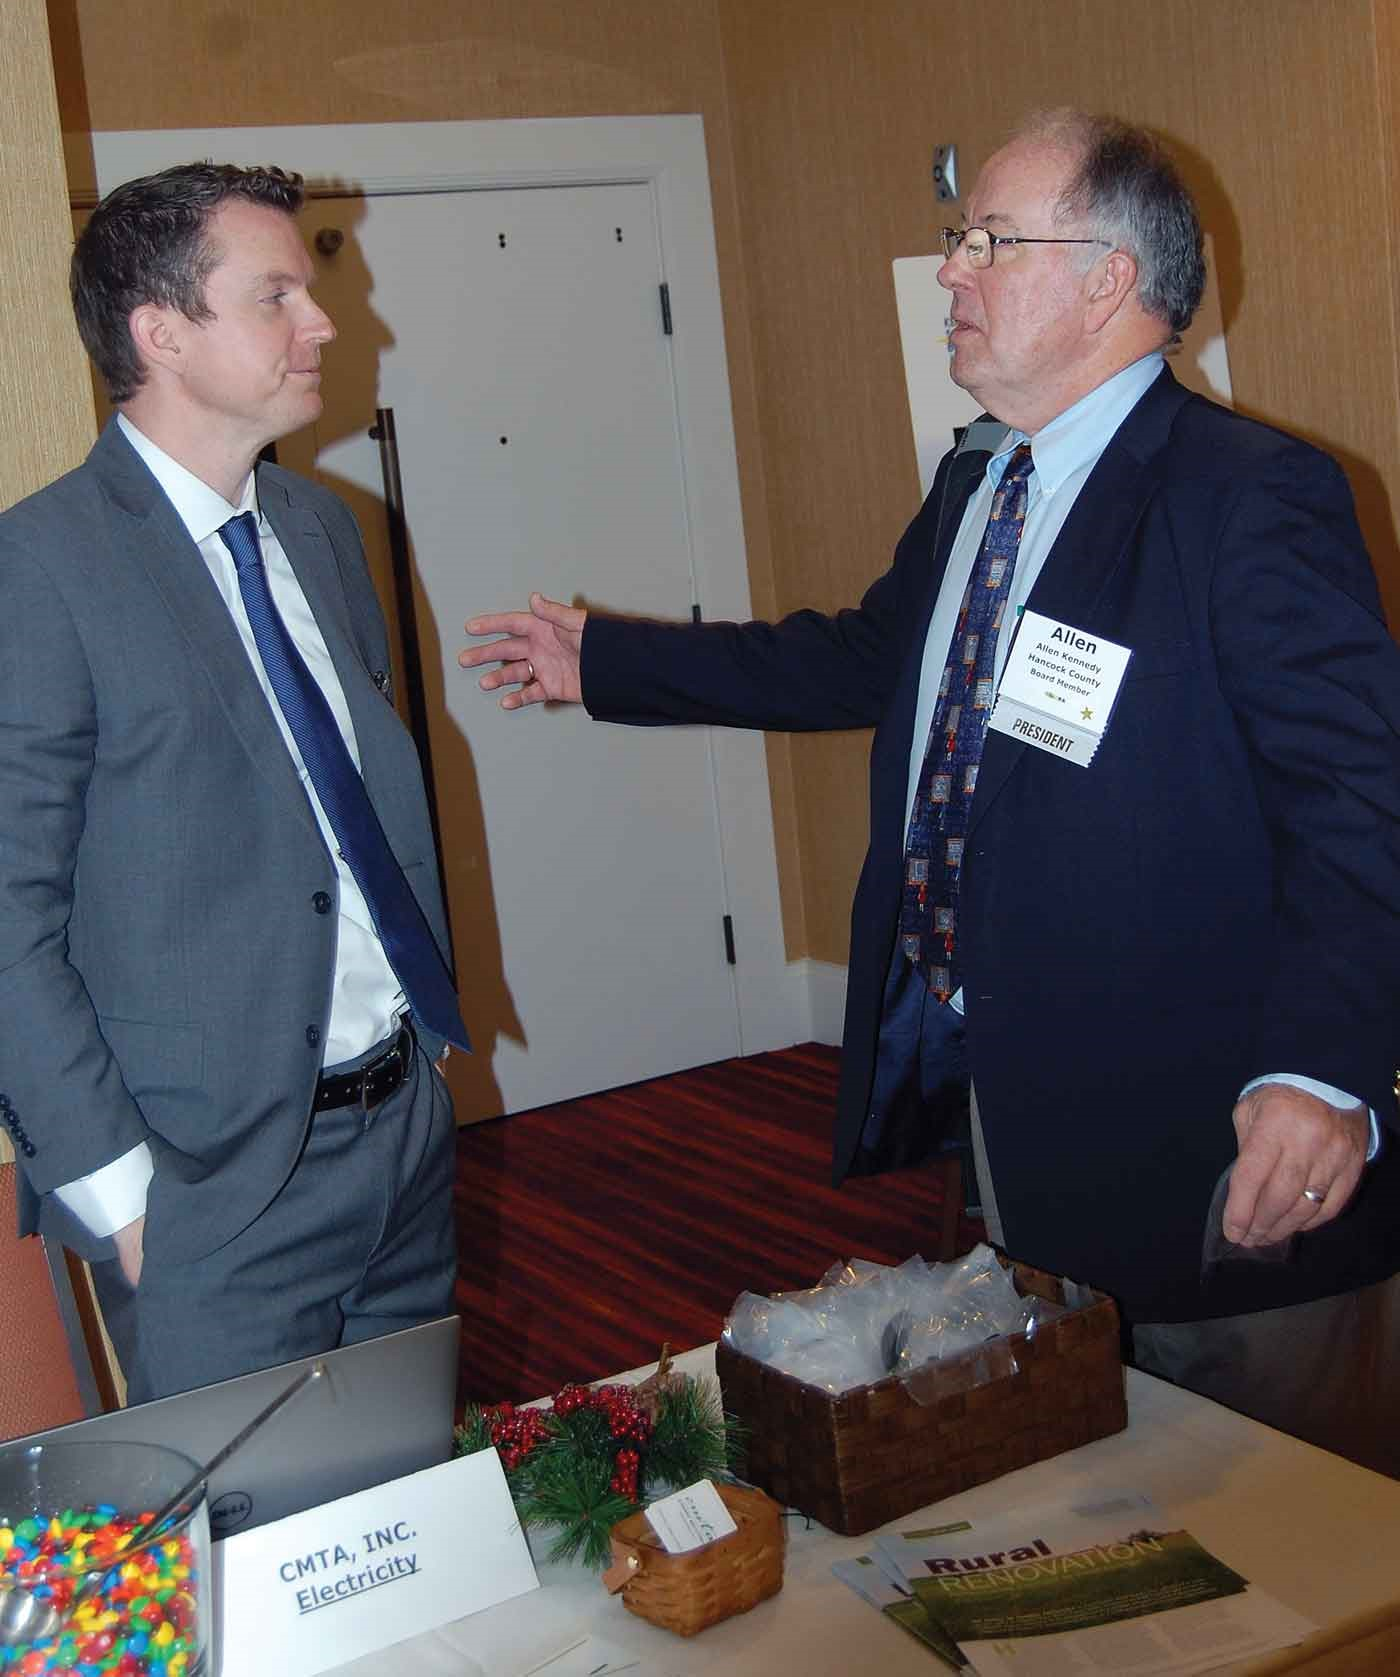 Conference attendees were able to spend time learning about school-related services with representatives of 18 education service vendors. KSBA President Allen Kennedy of Hancock County, right, chats with Jeremy Smith, head of Energy Solutions for CMTA, Inc. Consulting Engineers, one of the conference sponsors.  The weekend also included Kennedy's final time chairing a KSBA Board of Directors meeting, as his term as president will conclude with February's annual conference in Louisville.